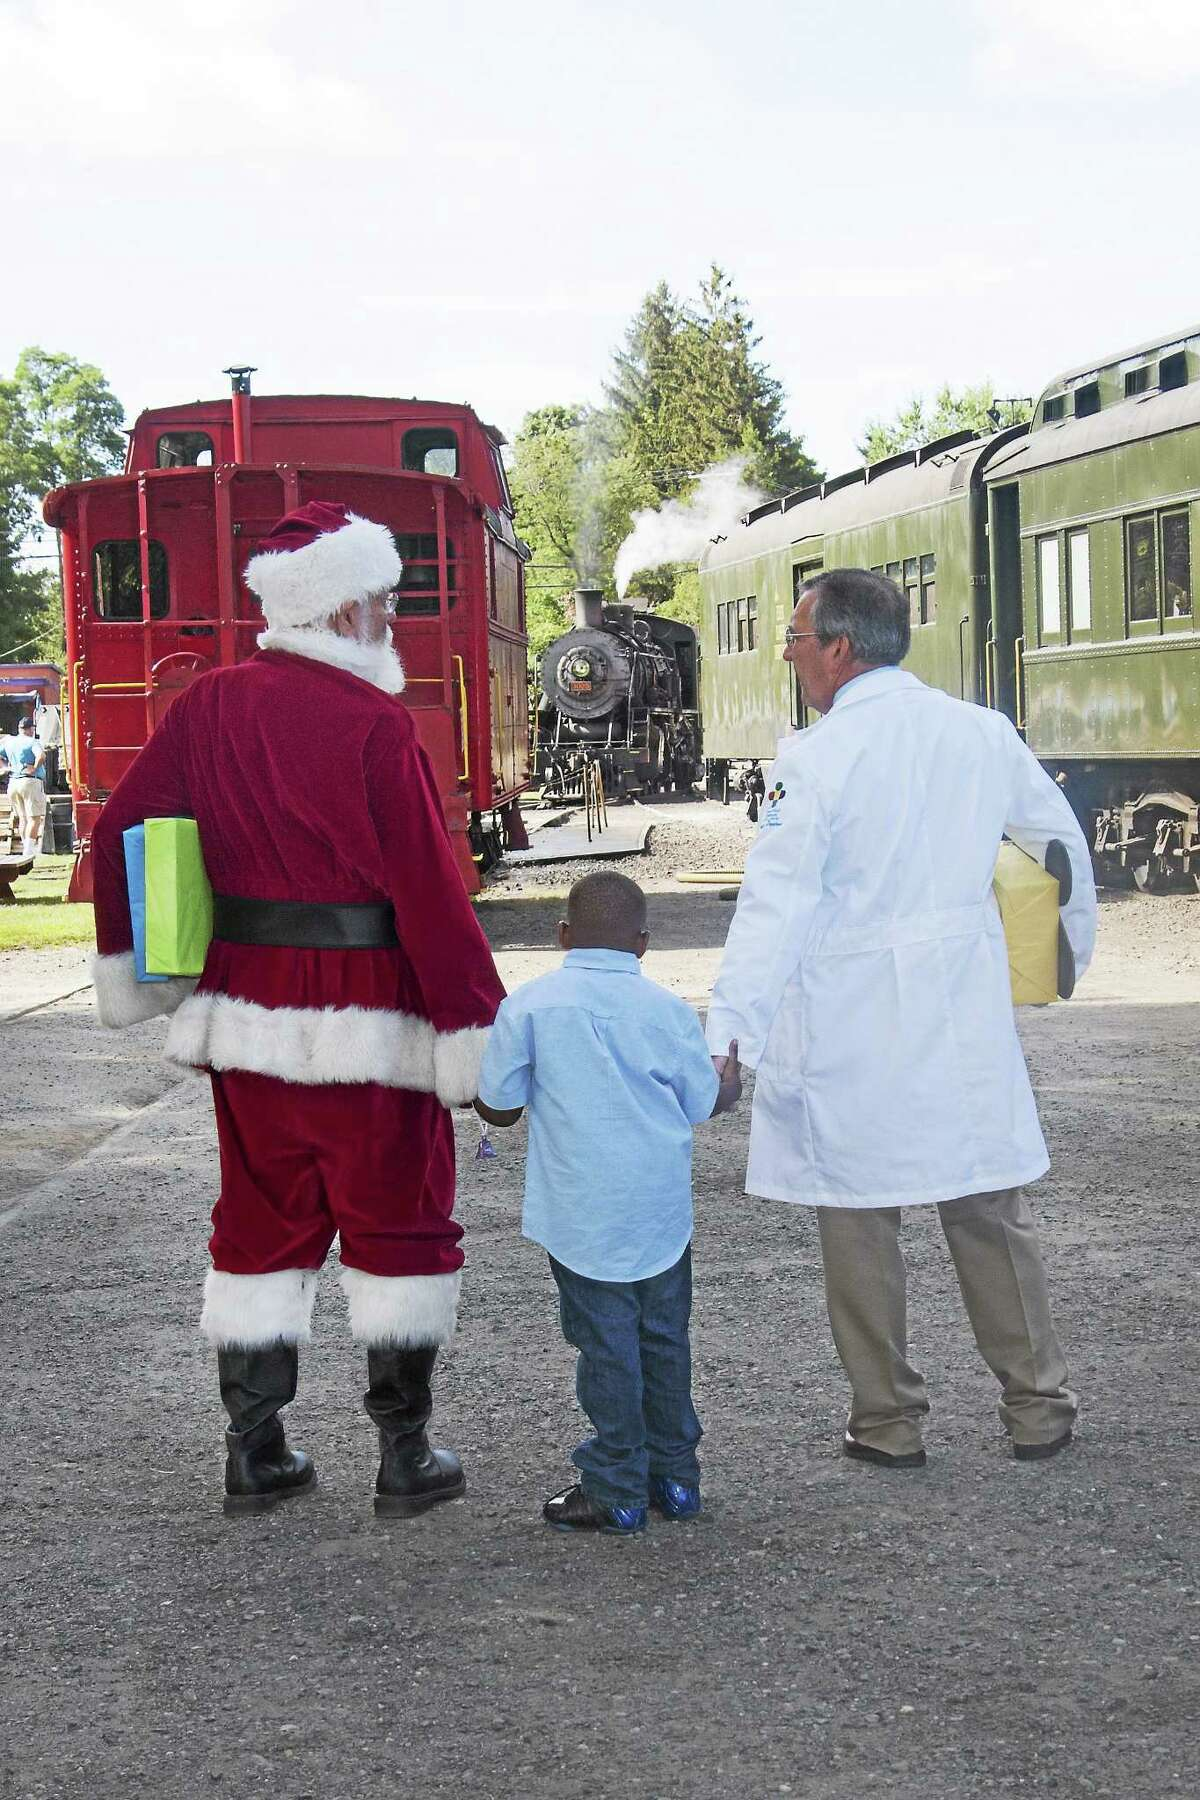 Photos courtesy of CCM/Essex Steam Train Santa, a young patient and a medical practitioner from Connecticut Children's Medical Center.